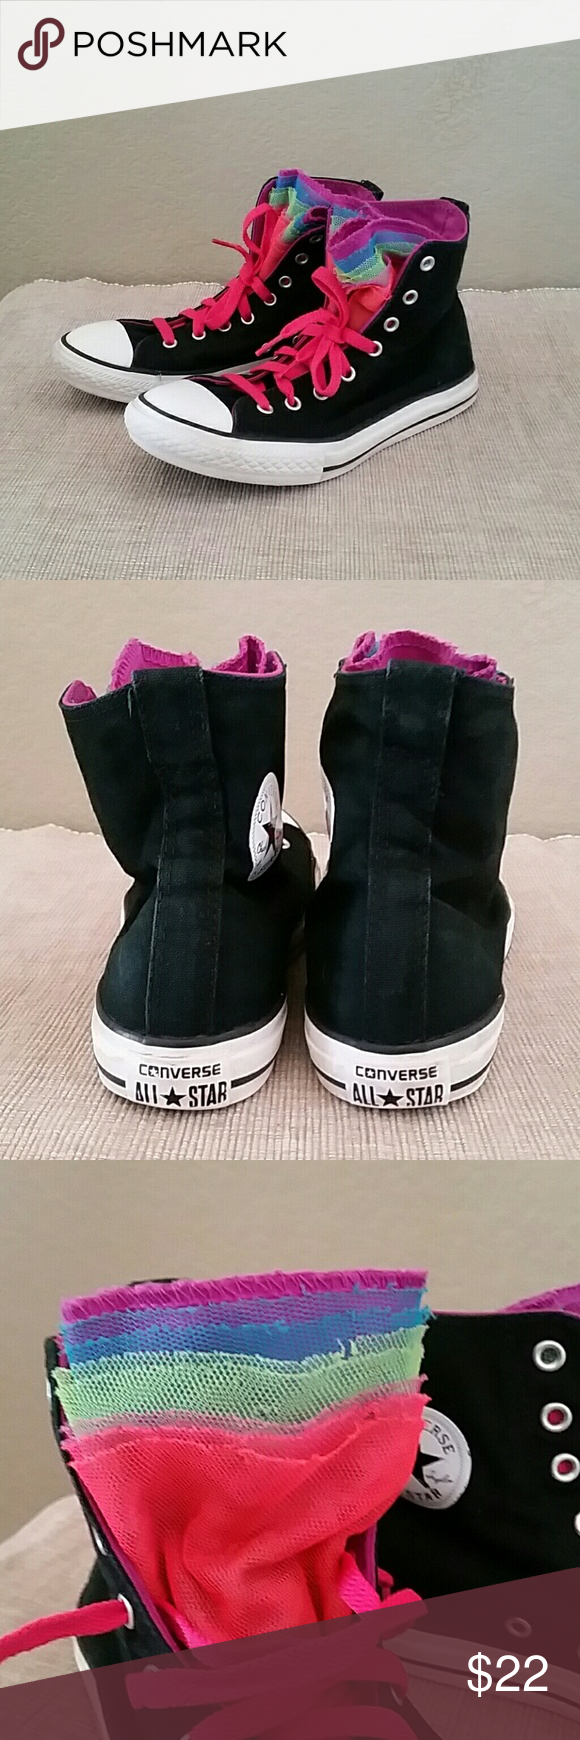 Converse rainbow hi tops sneakers size 4 EUR 36 Black with